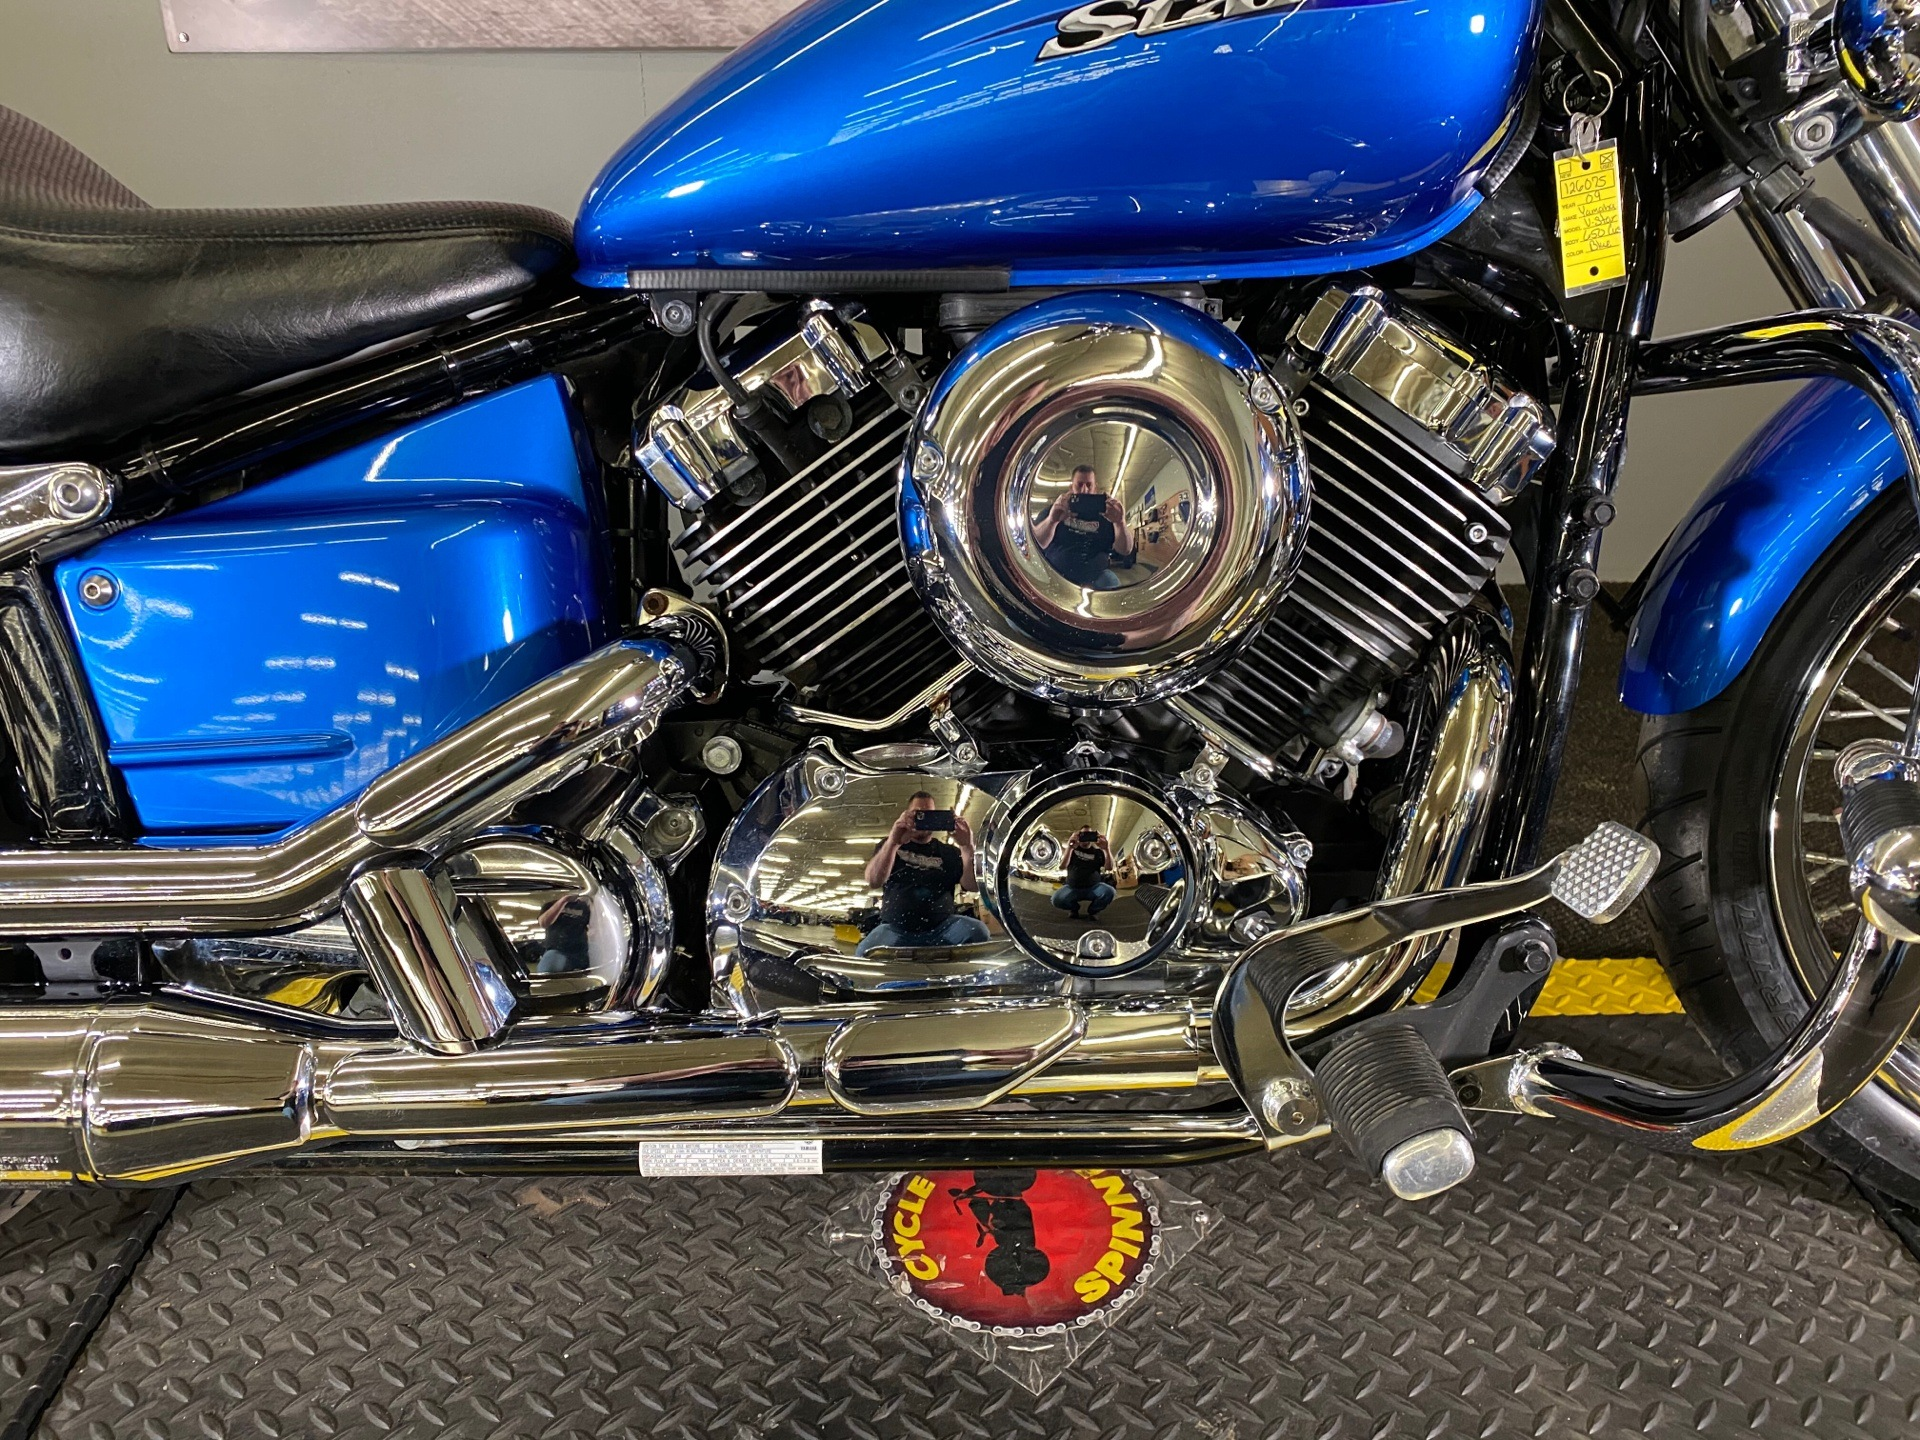 2009 Yamaha V Star 650 Custom in Tyrone, Pennsylvania - Photo 2